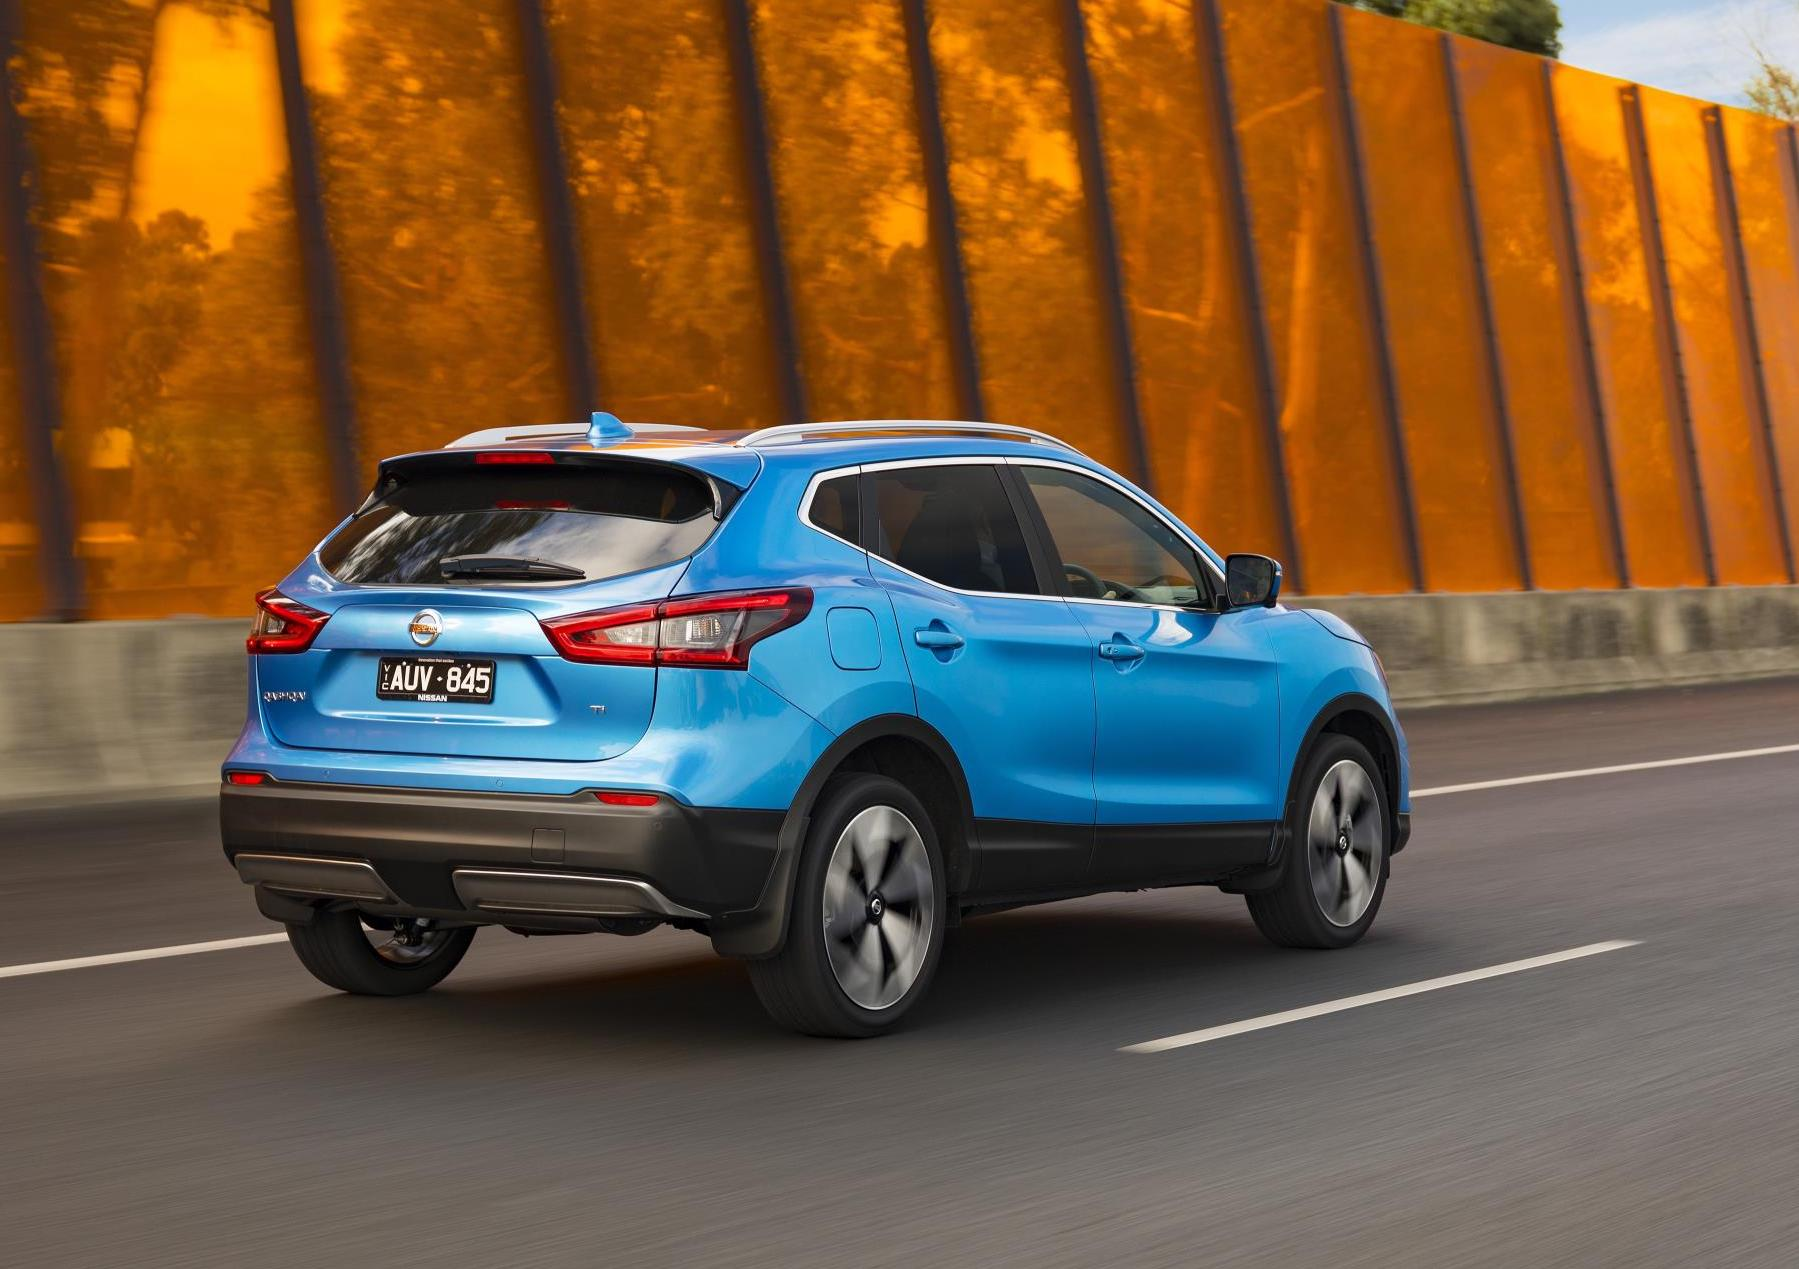 2018 Nissan Qashqai Update Adds Ti Flagship Variant